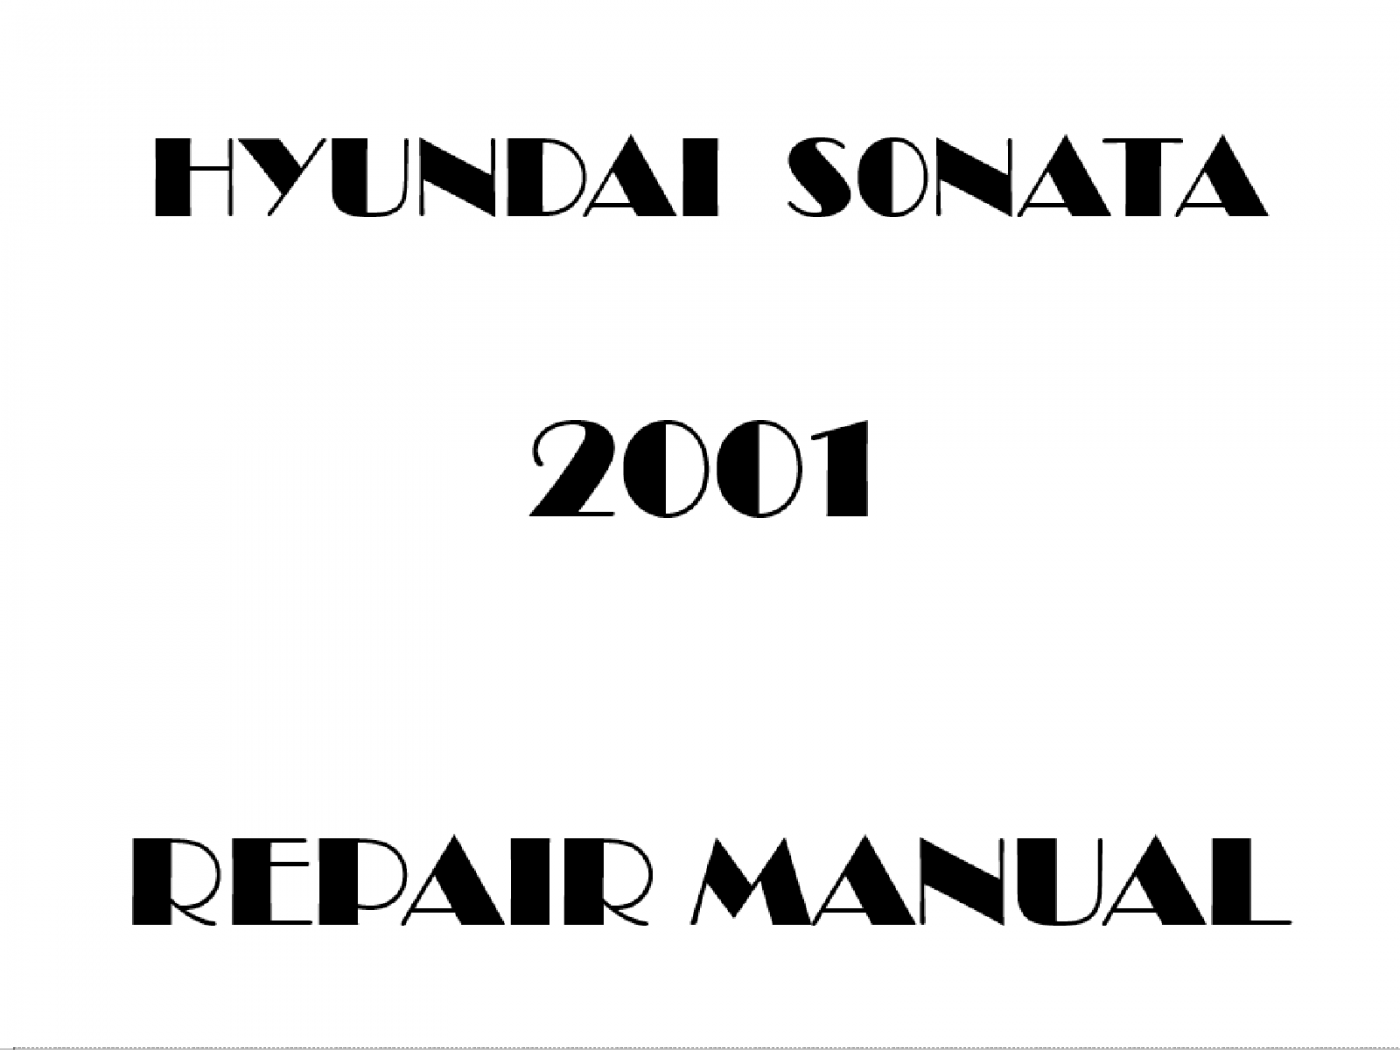 2001 Hyundai Sonata repair manual